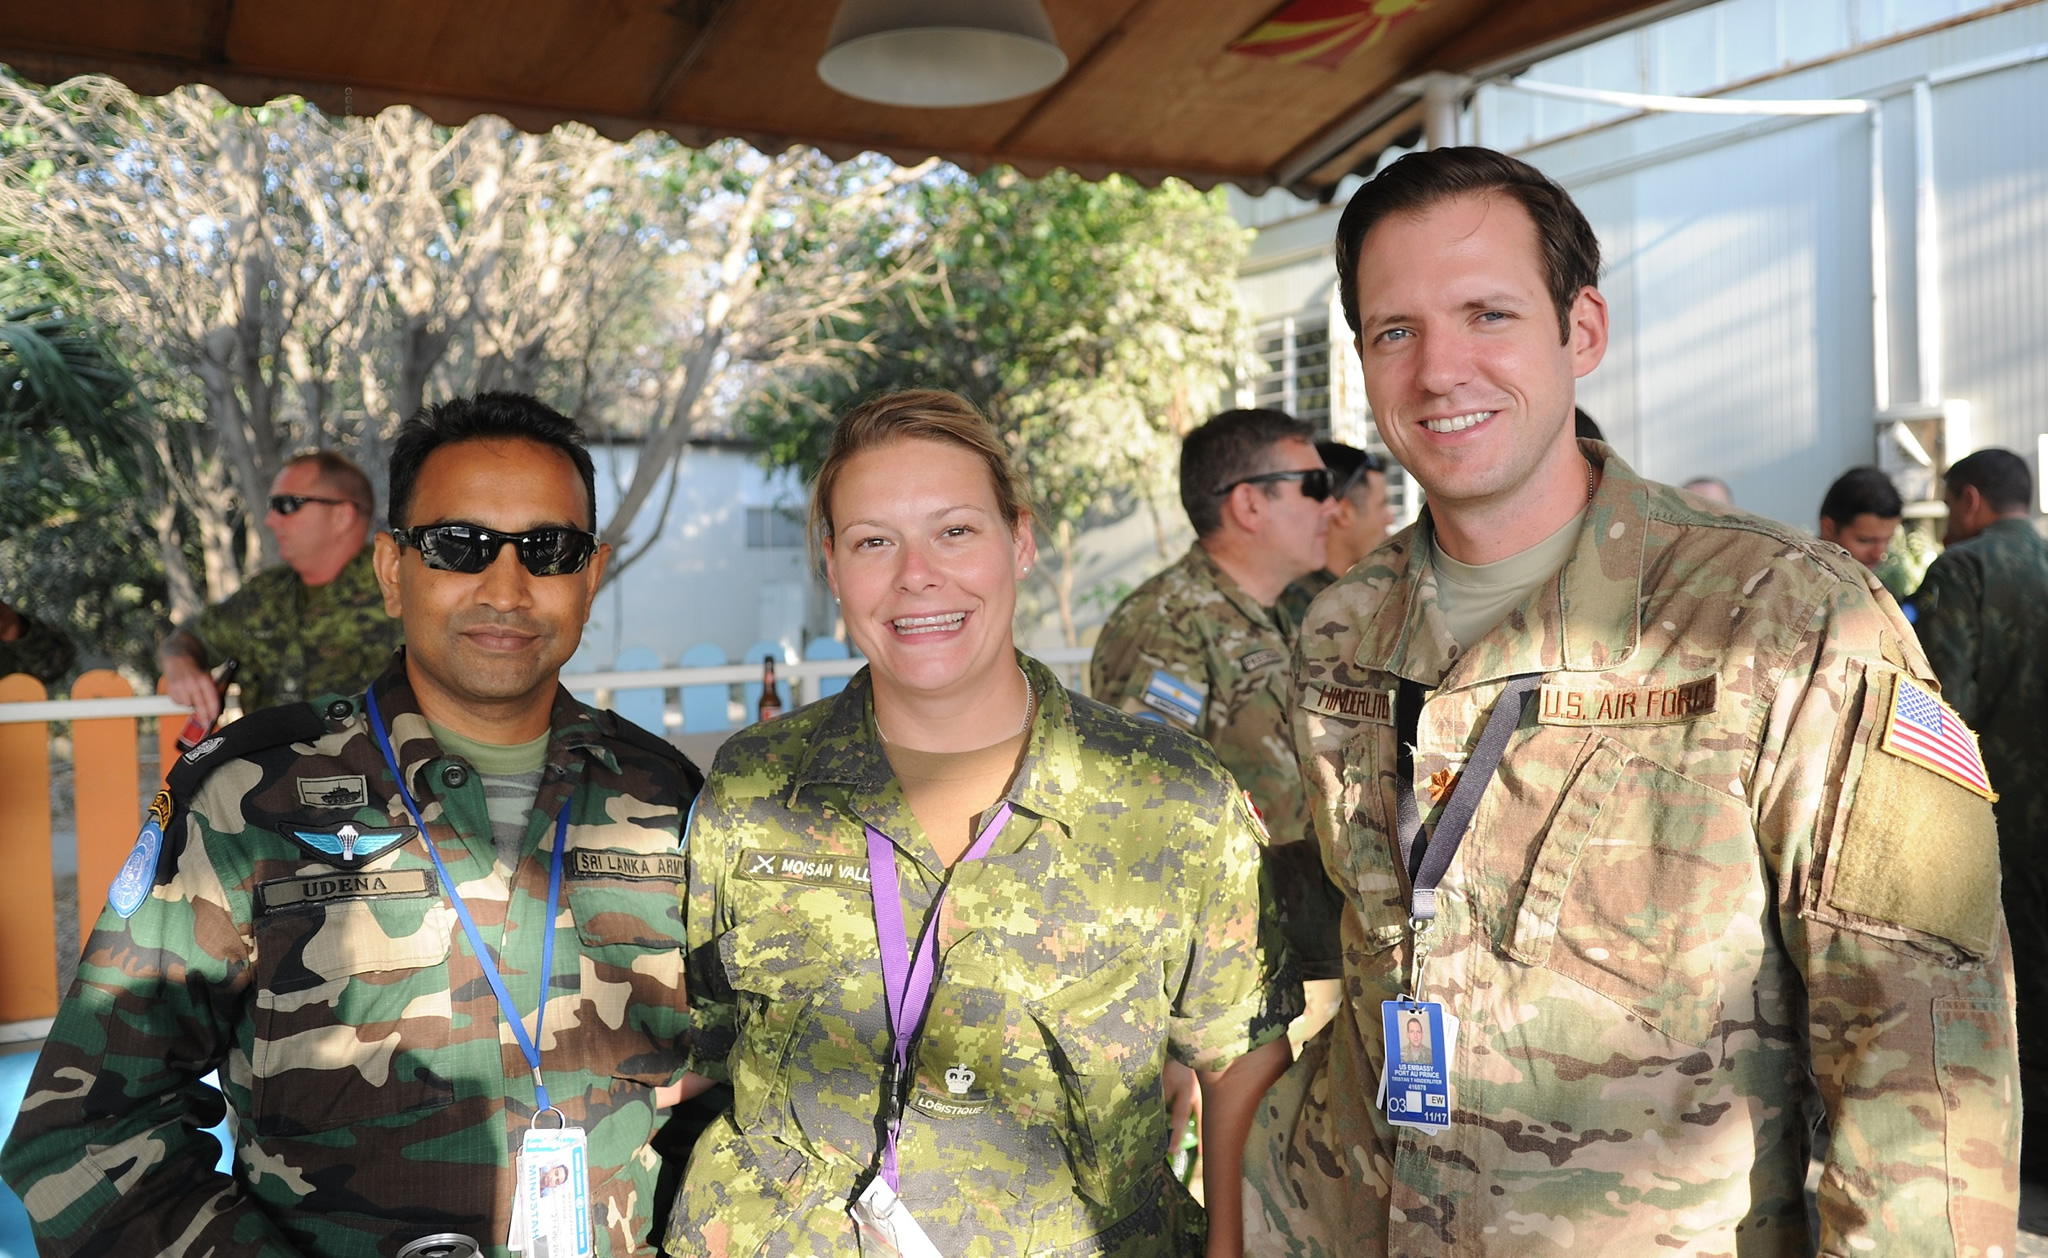 Port-au-Prince, Haiti. February 17, 2017 – Canadian Army Maj Stephanie Moisan-Vallée, a logistics officer in MINUSTAH, stands with two colleagues at Delta Camp, Port-au-Prince. (Photo by Sgt Faizal Kasan, MPIO)